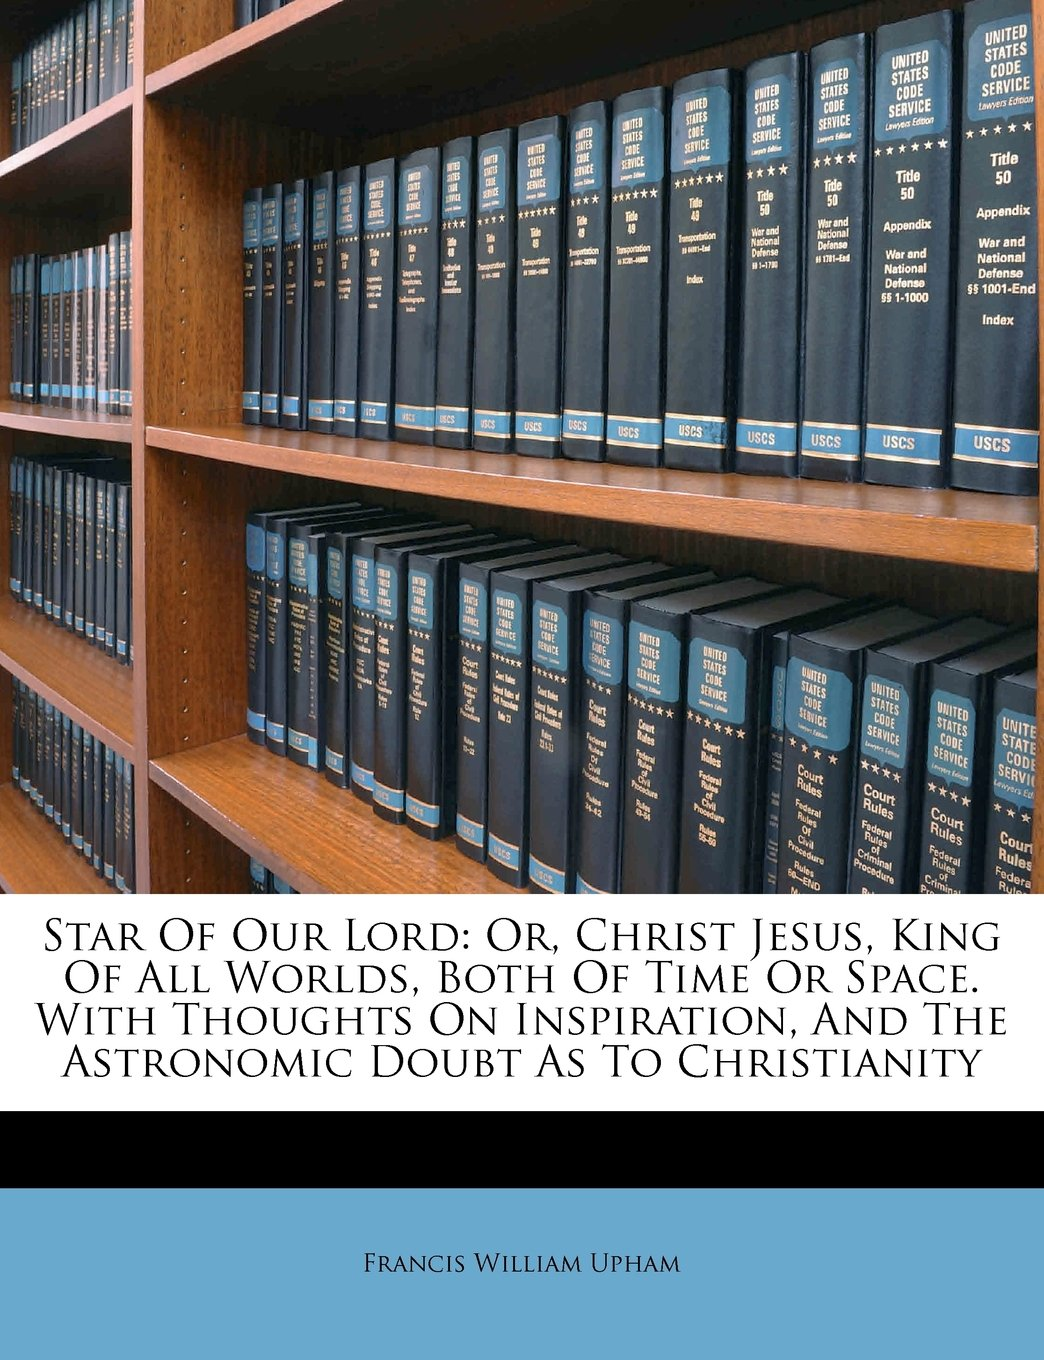 Download Star Of Our Lord: Or, Christ Jesus, King Of All Worlds, Both Of Time Or Space. With Thoughts On Inspiration, And The Astronomic Doubt As To Christianity ebook